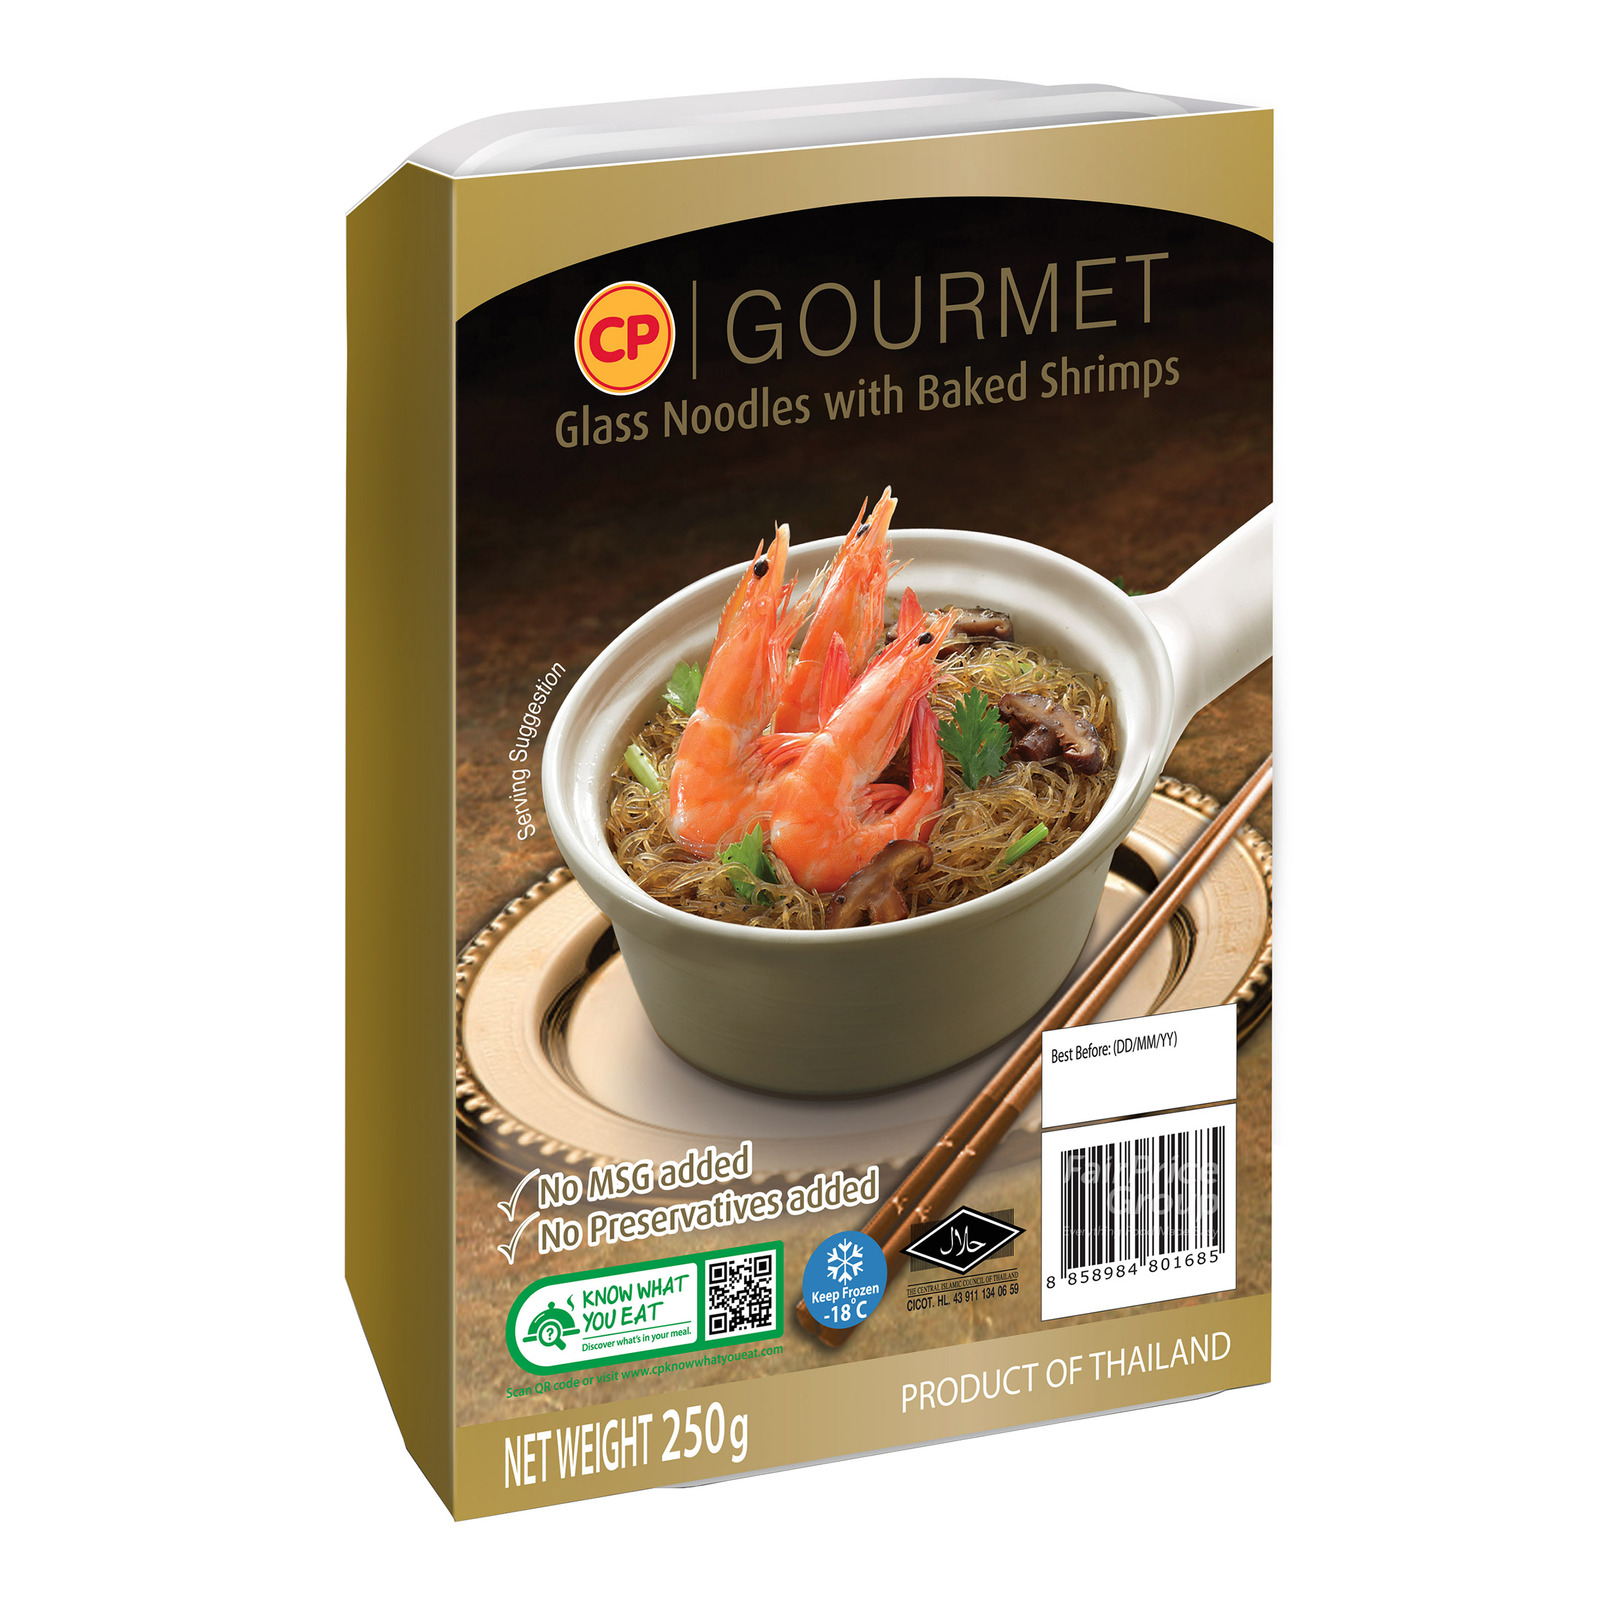 CP Gourmet Ready Meal - Glass Noodles with Baked Shrimps